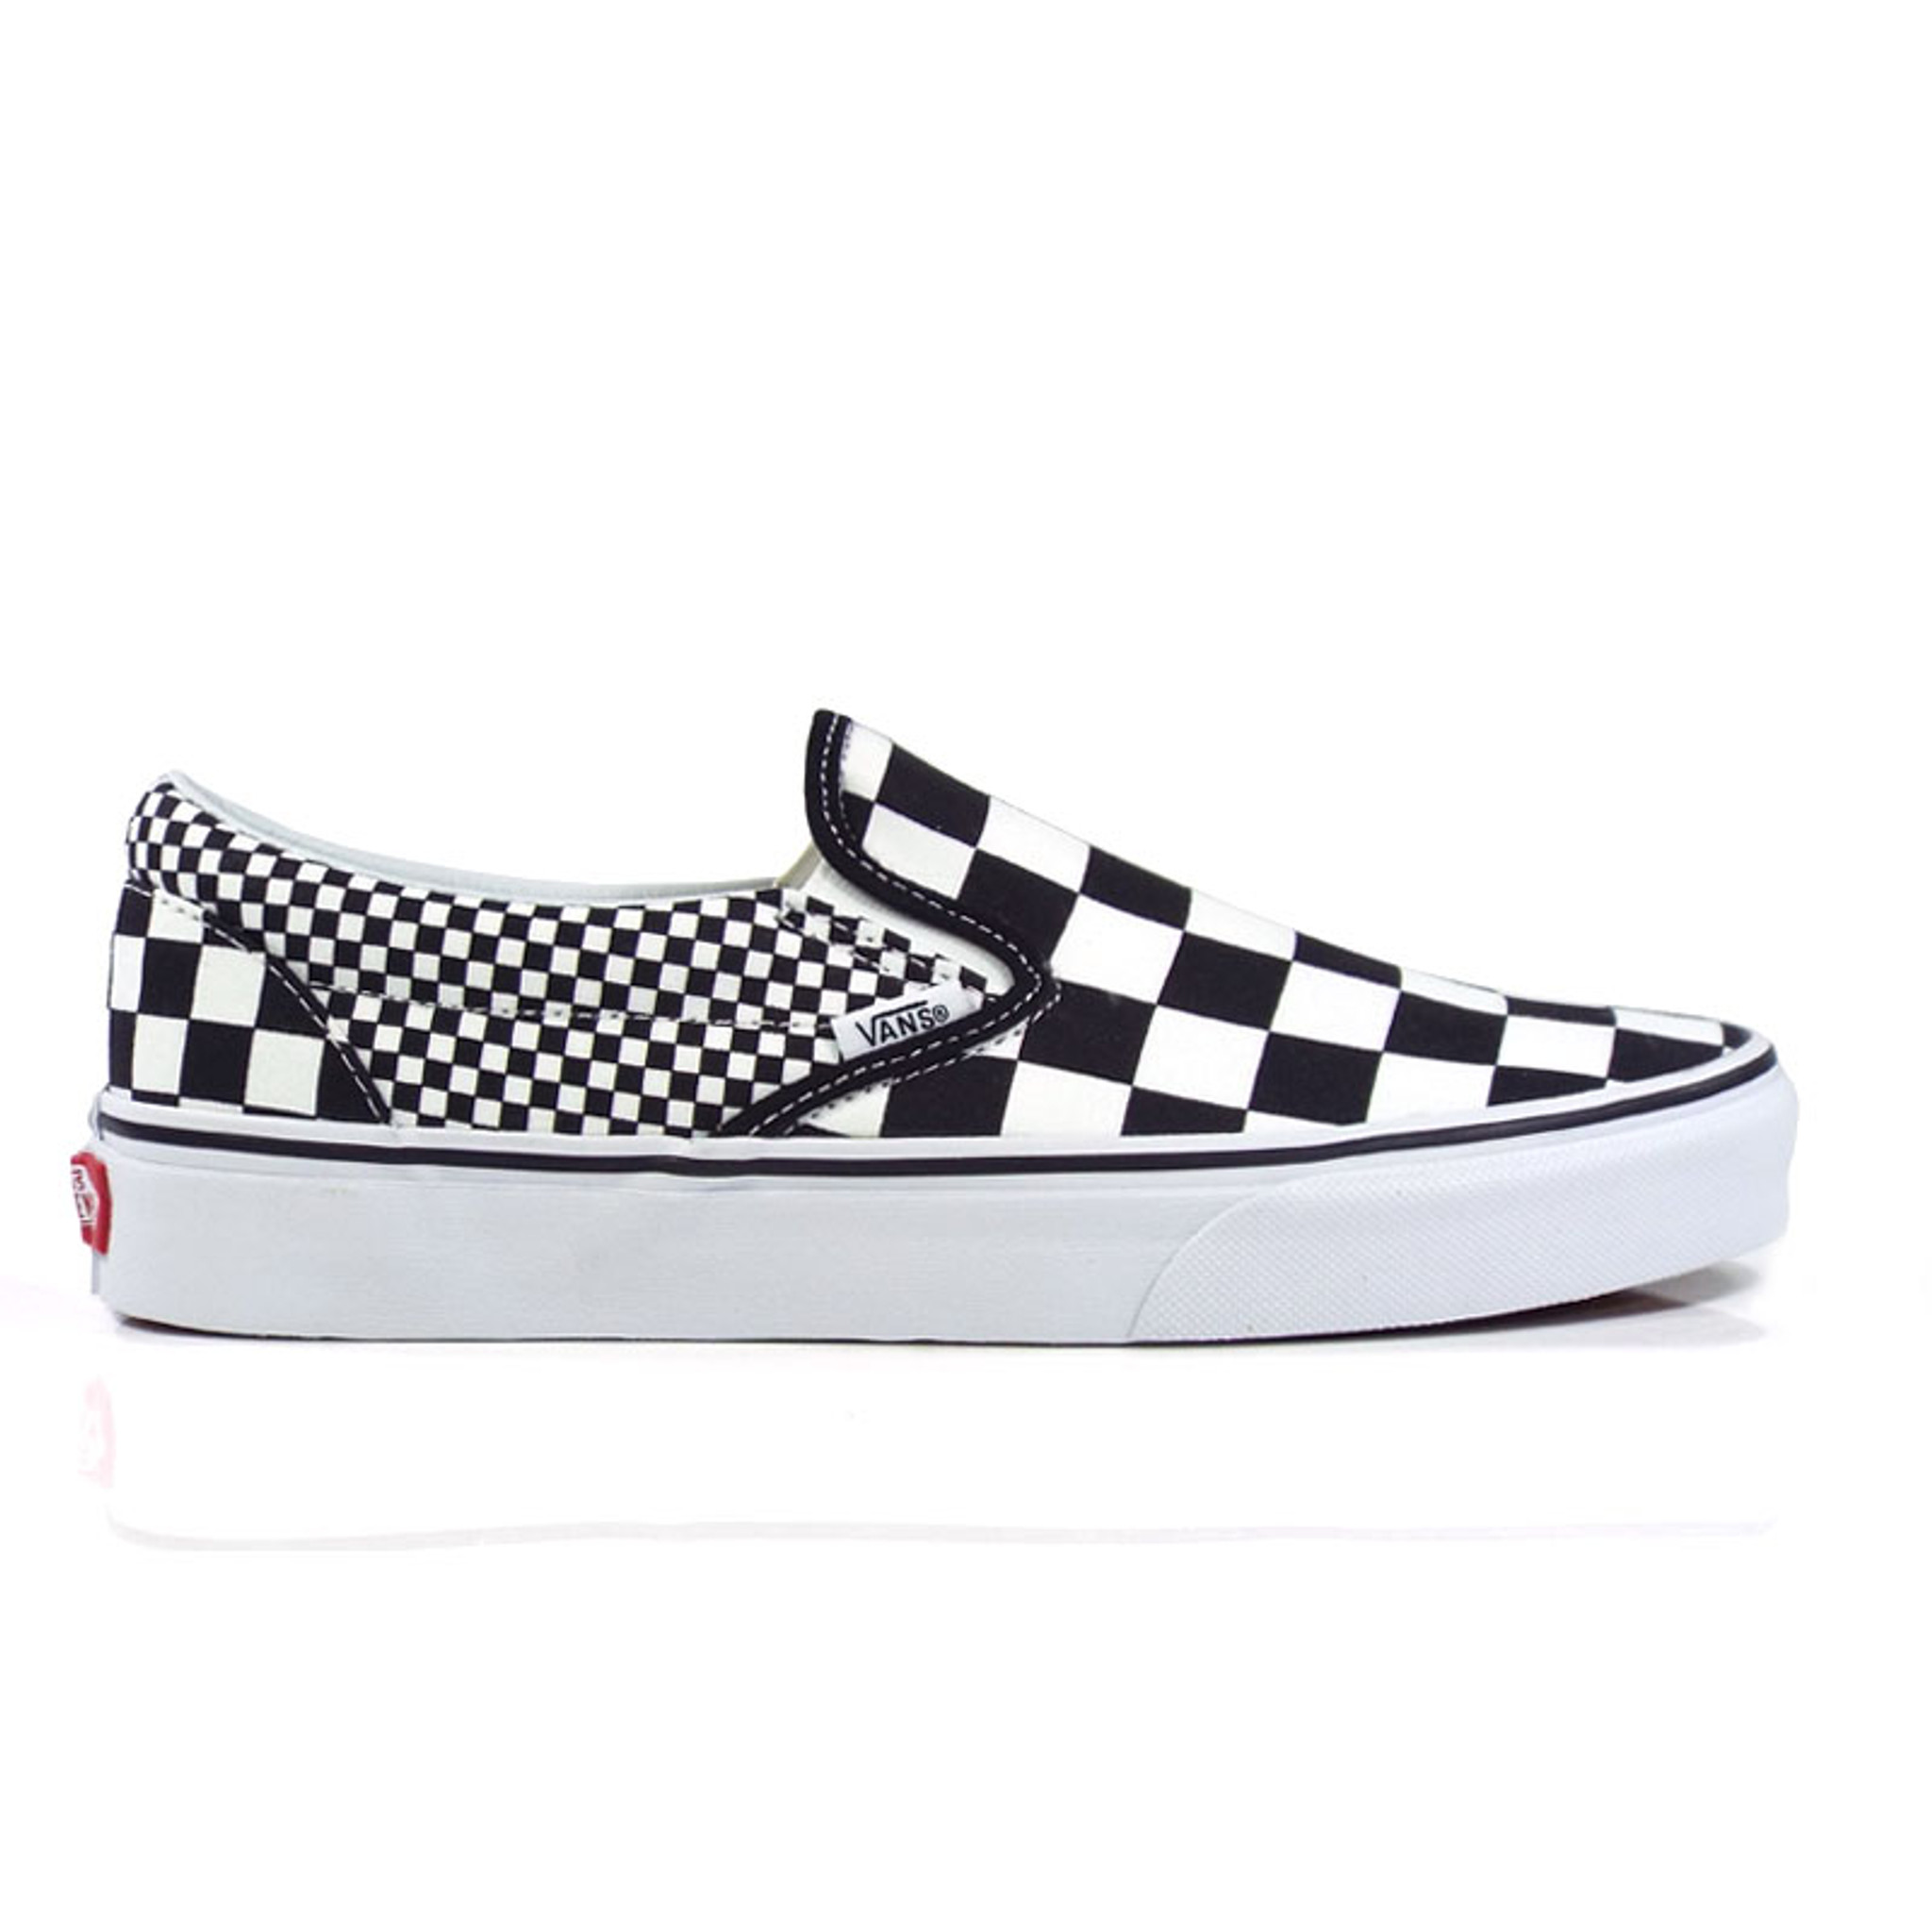 37ec8937bef6 Vans Classic Mix Checker Slip On Shoes - Black/True White - Detroit ...